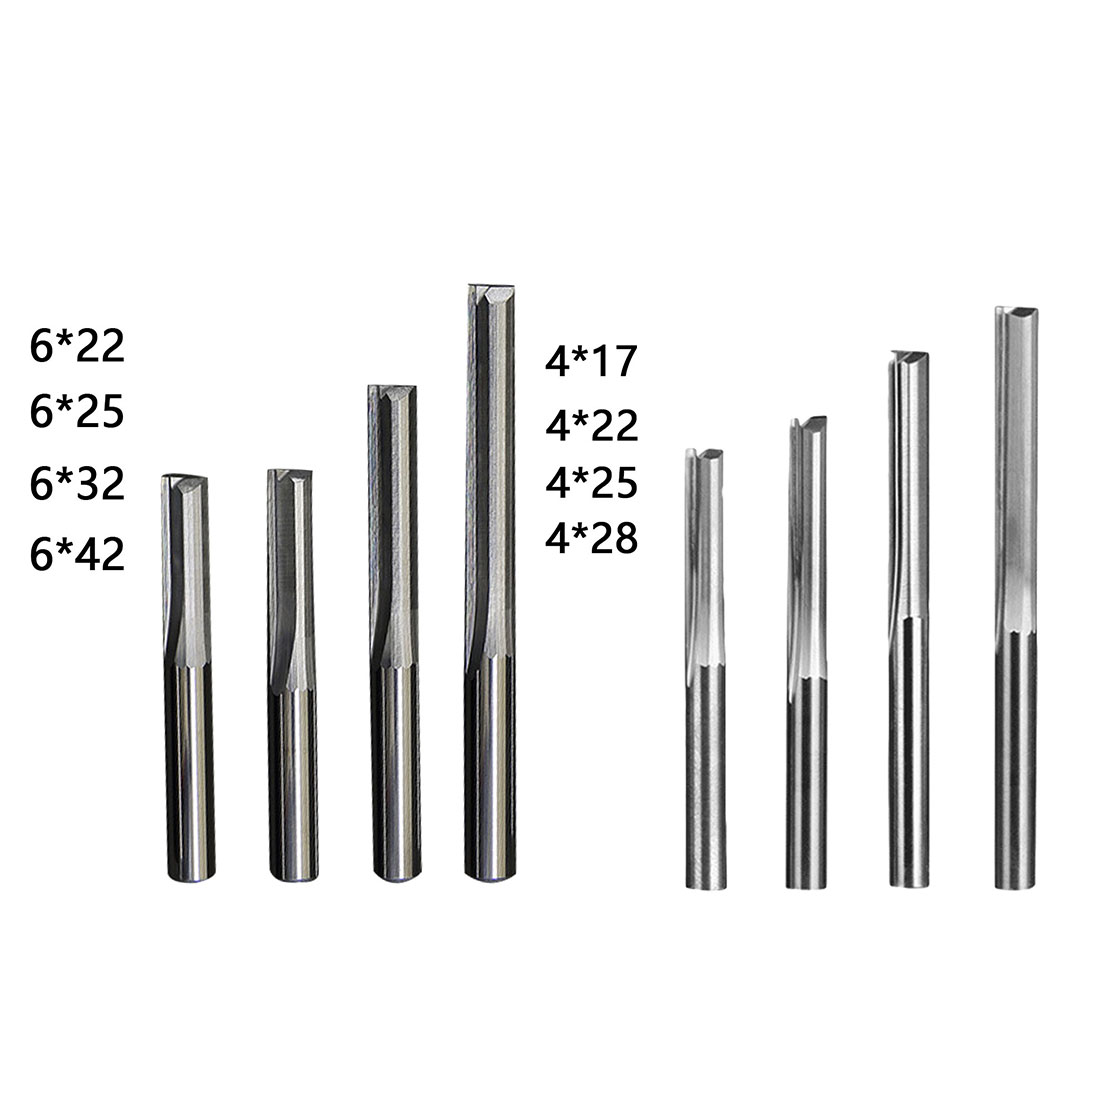 6mm/4mm Shank Two Flutes Straight Router Bits for Wood CNC Straight Engraving Cutters End Mill Tools Milling Cutter6mm/4mm Shank Two Flutes Straight Router Bits for Wood CNC Straight Engraving Cutters End Mill Tools Milling Cutter